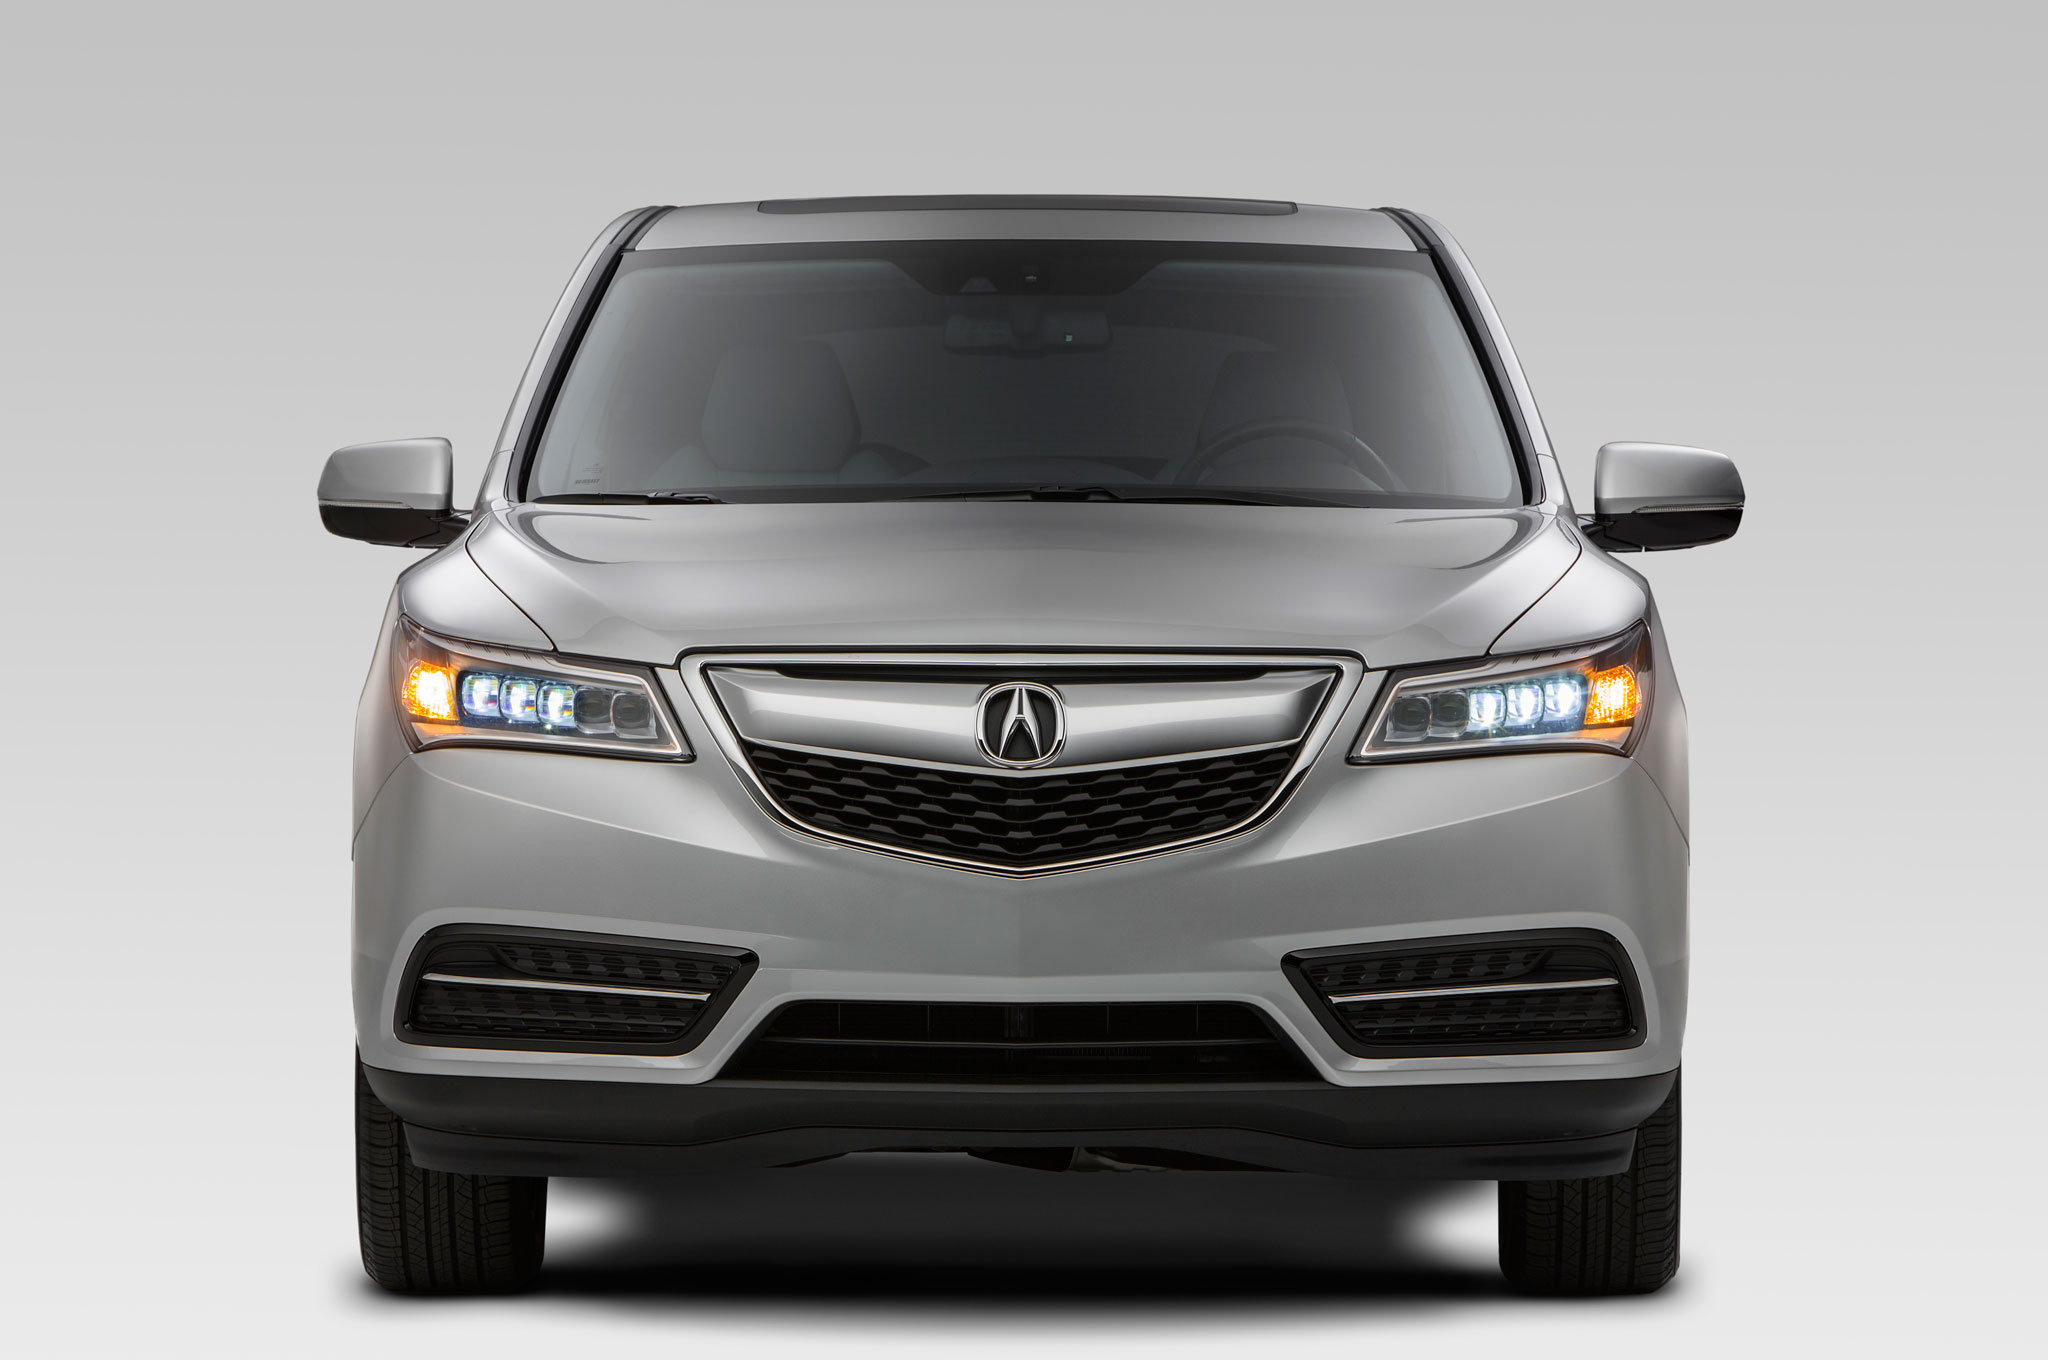 2014 Acura MDX Front View11